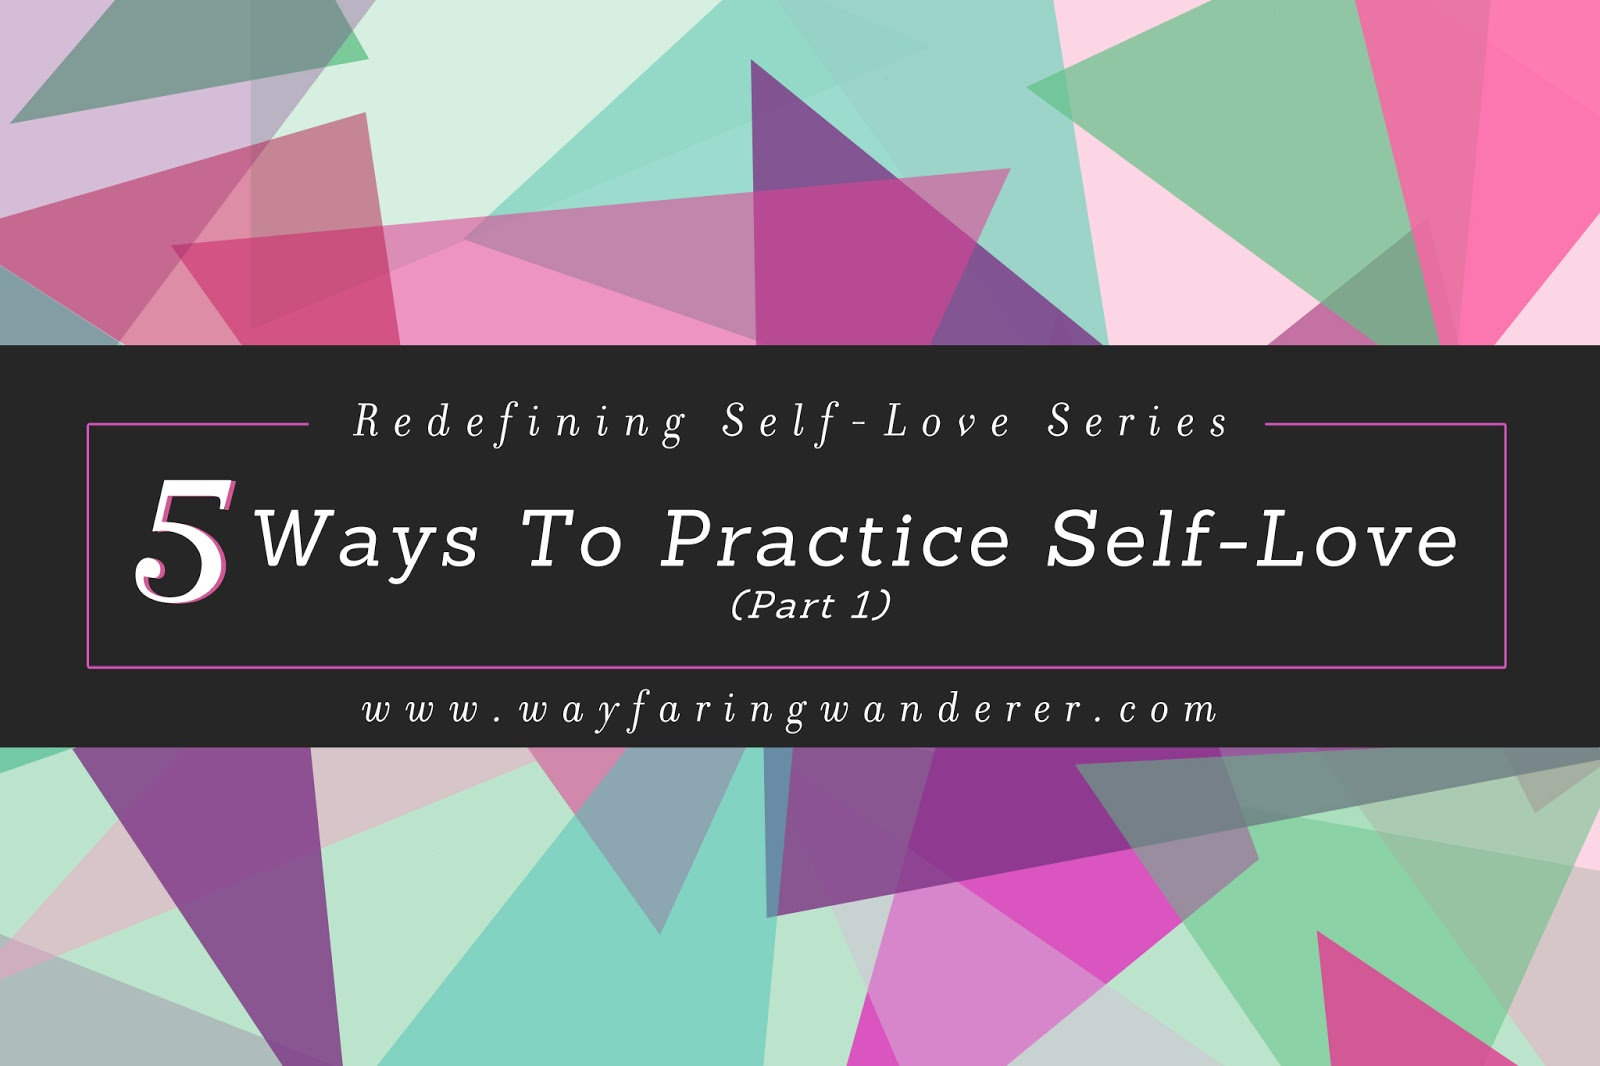 Redefining Self-Love Series: 5 Ways To Practice Self-Love